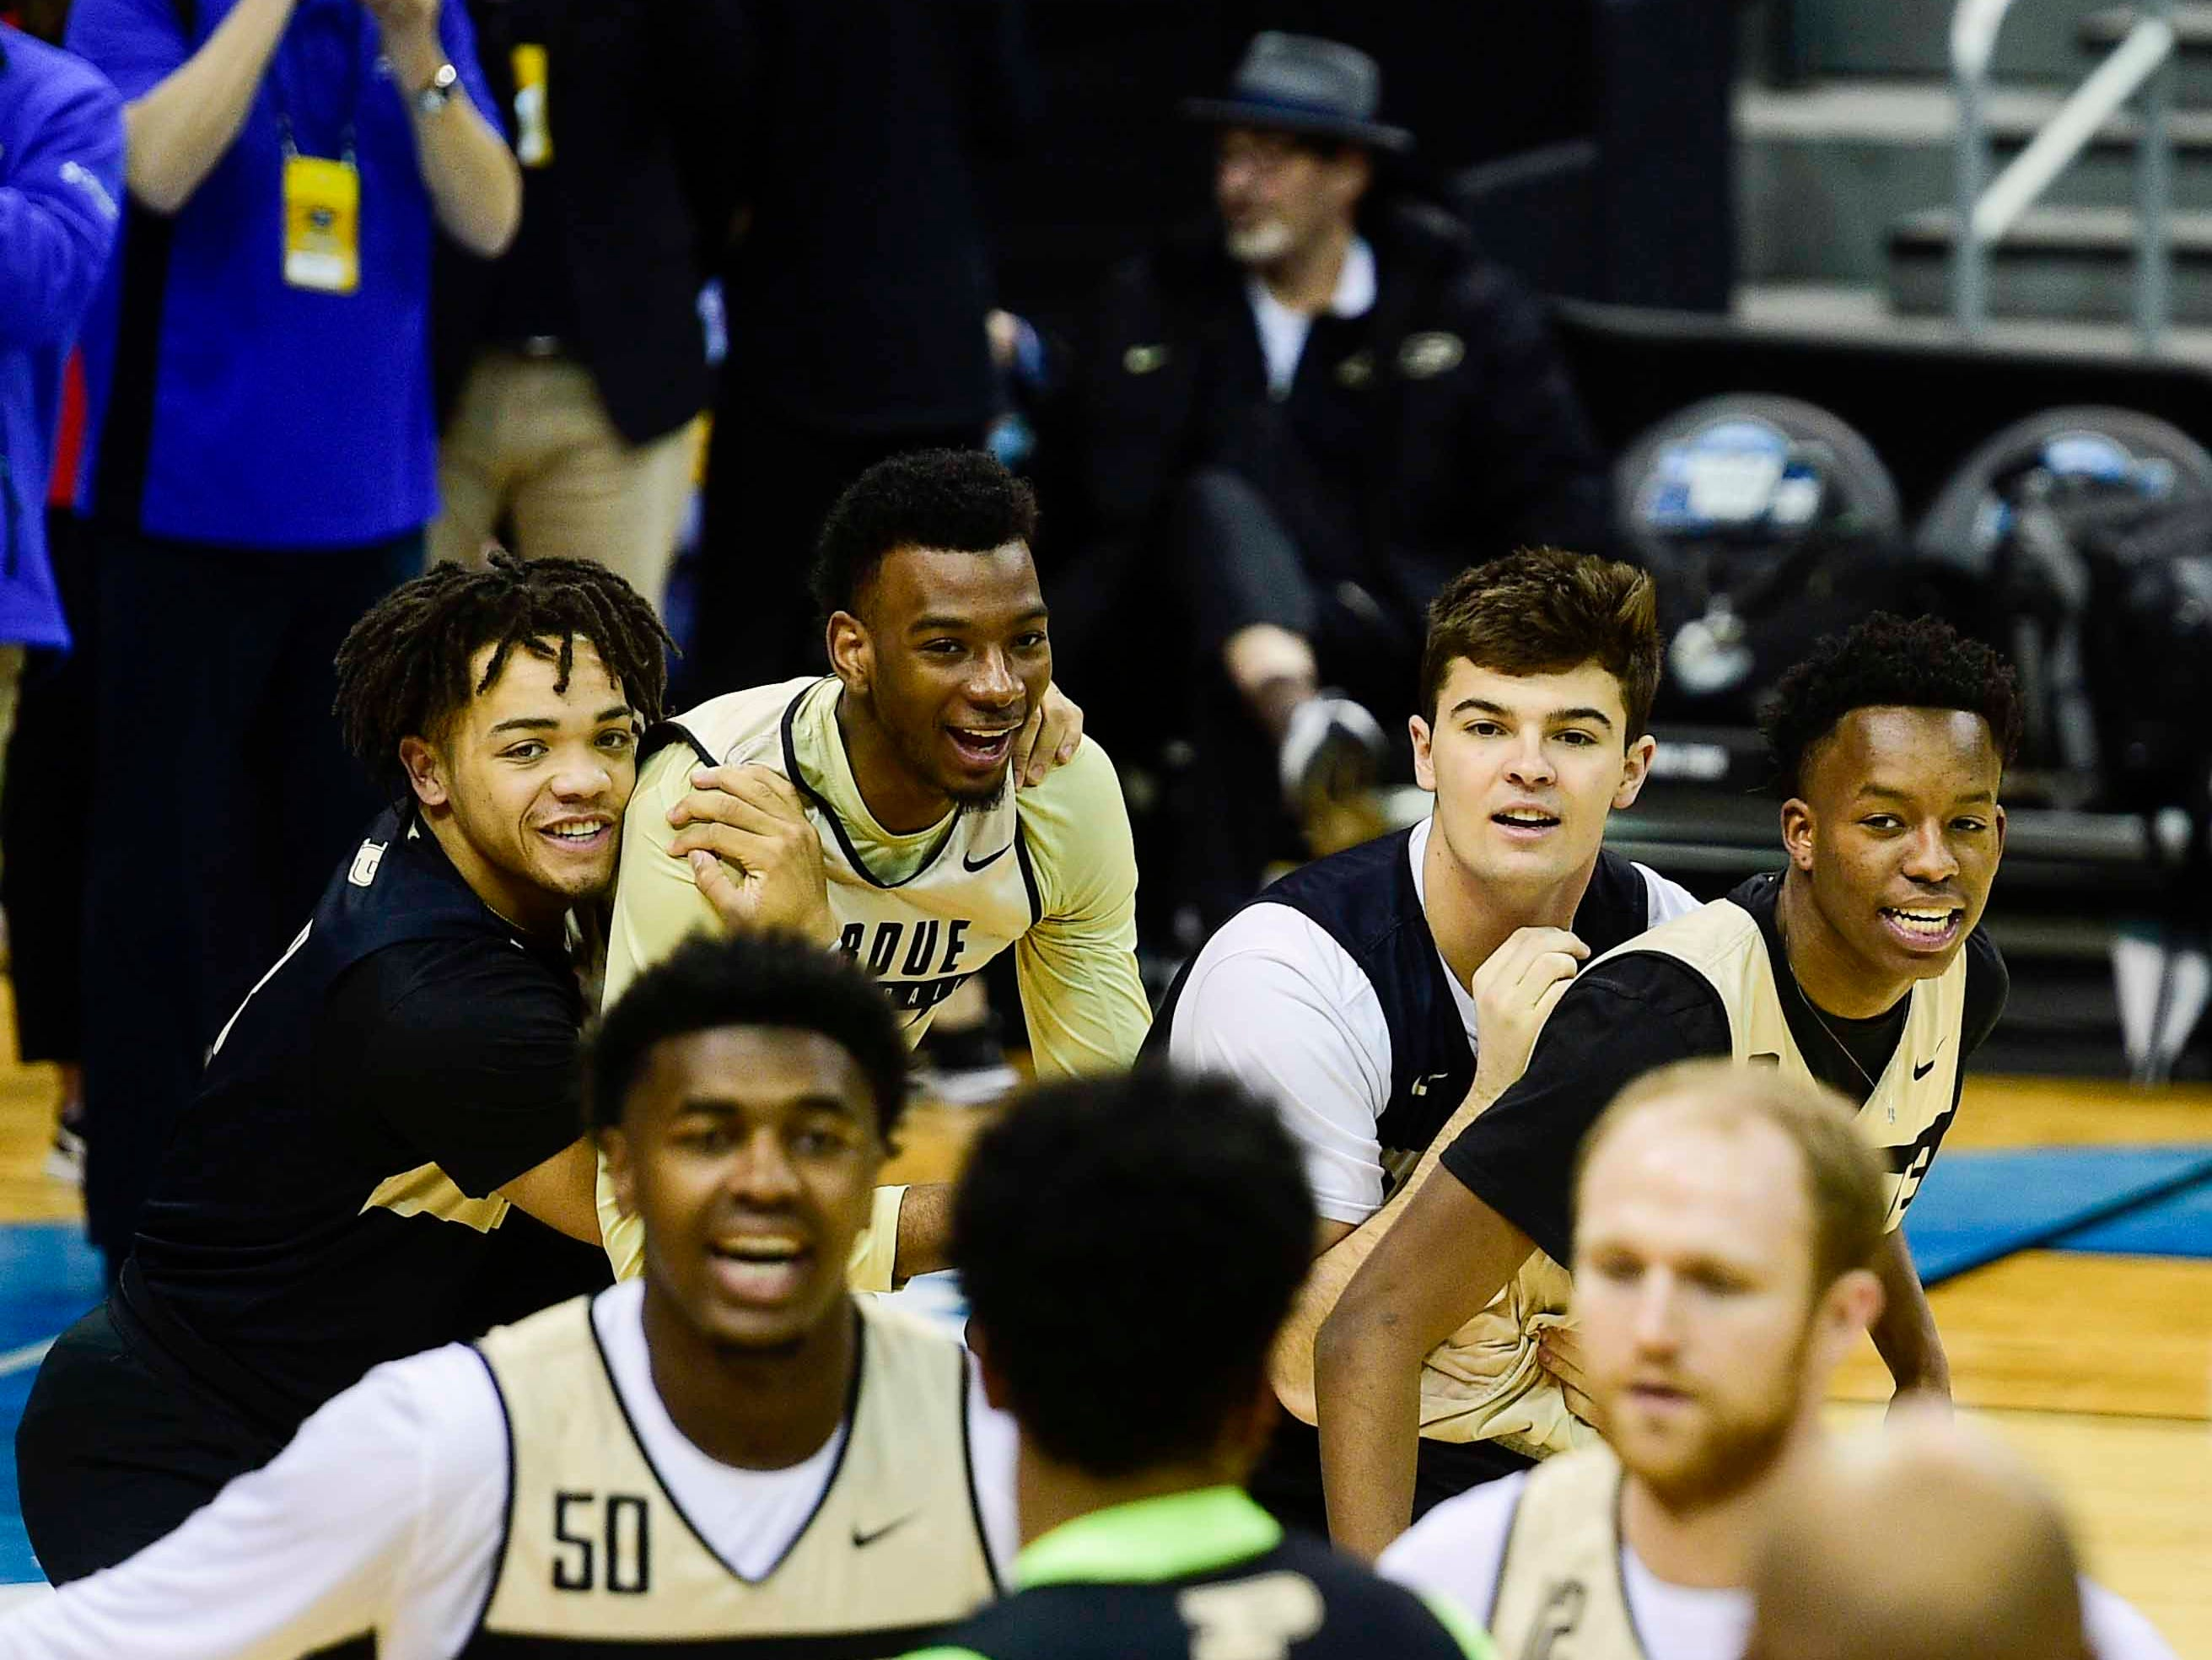 Mar 27, 2019; Louisville, KY, United States; Purdue Boilermakers team members participate in drills during Purdue Boilermakers practice for the south regional of the 2019 NCAA Tournament at KFC Yum Center. Mandatory Credit: Thomas J. Russo-USA TODAY Sports